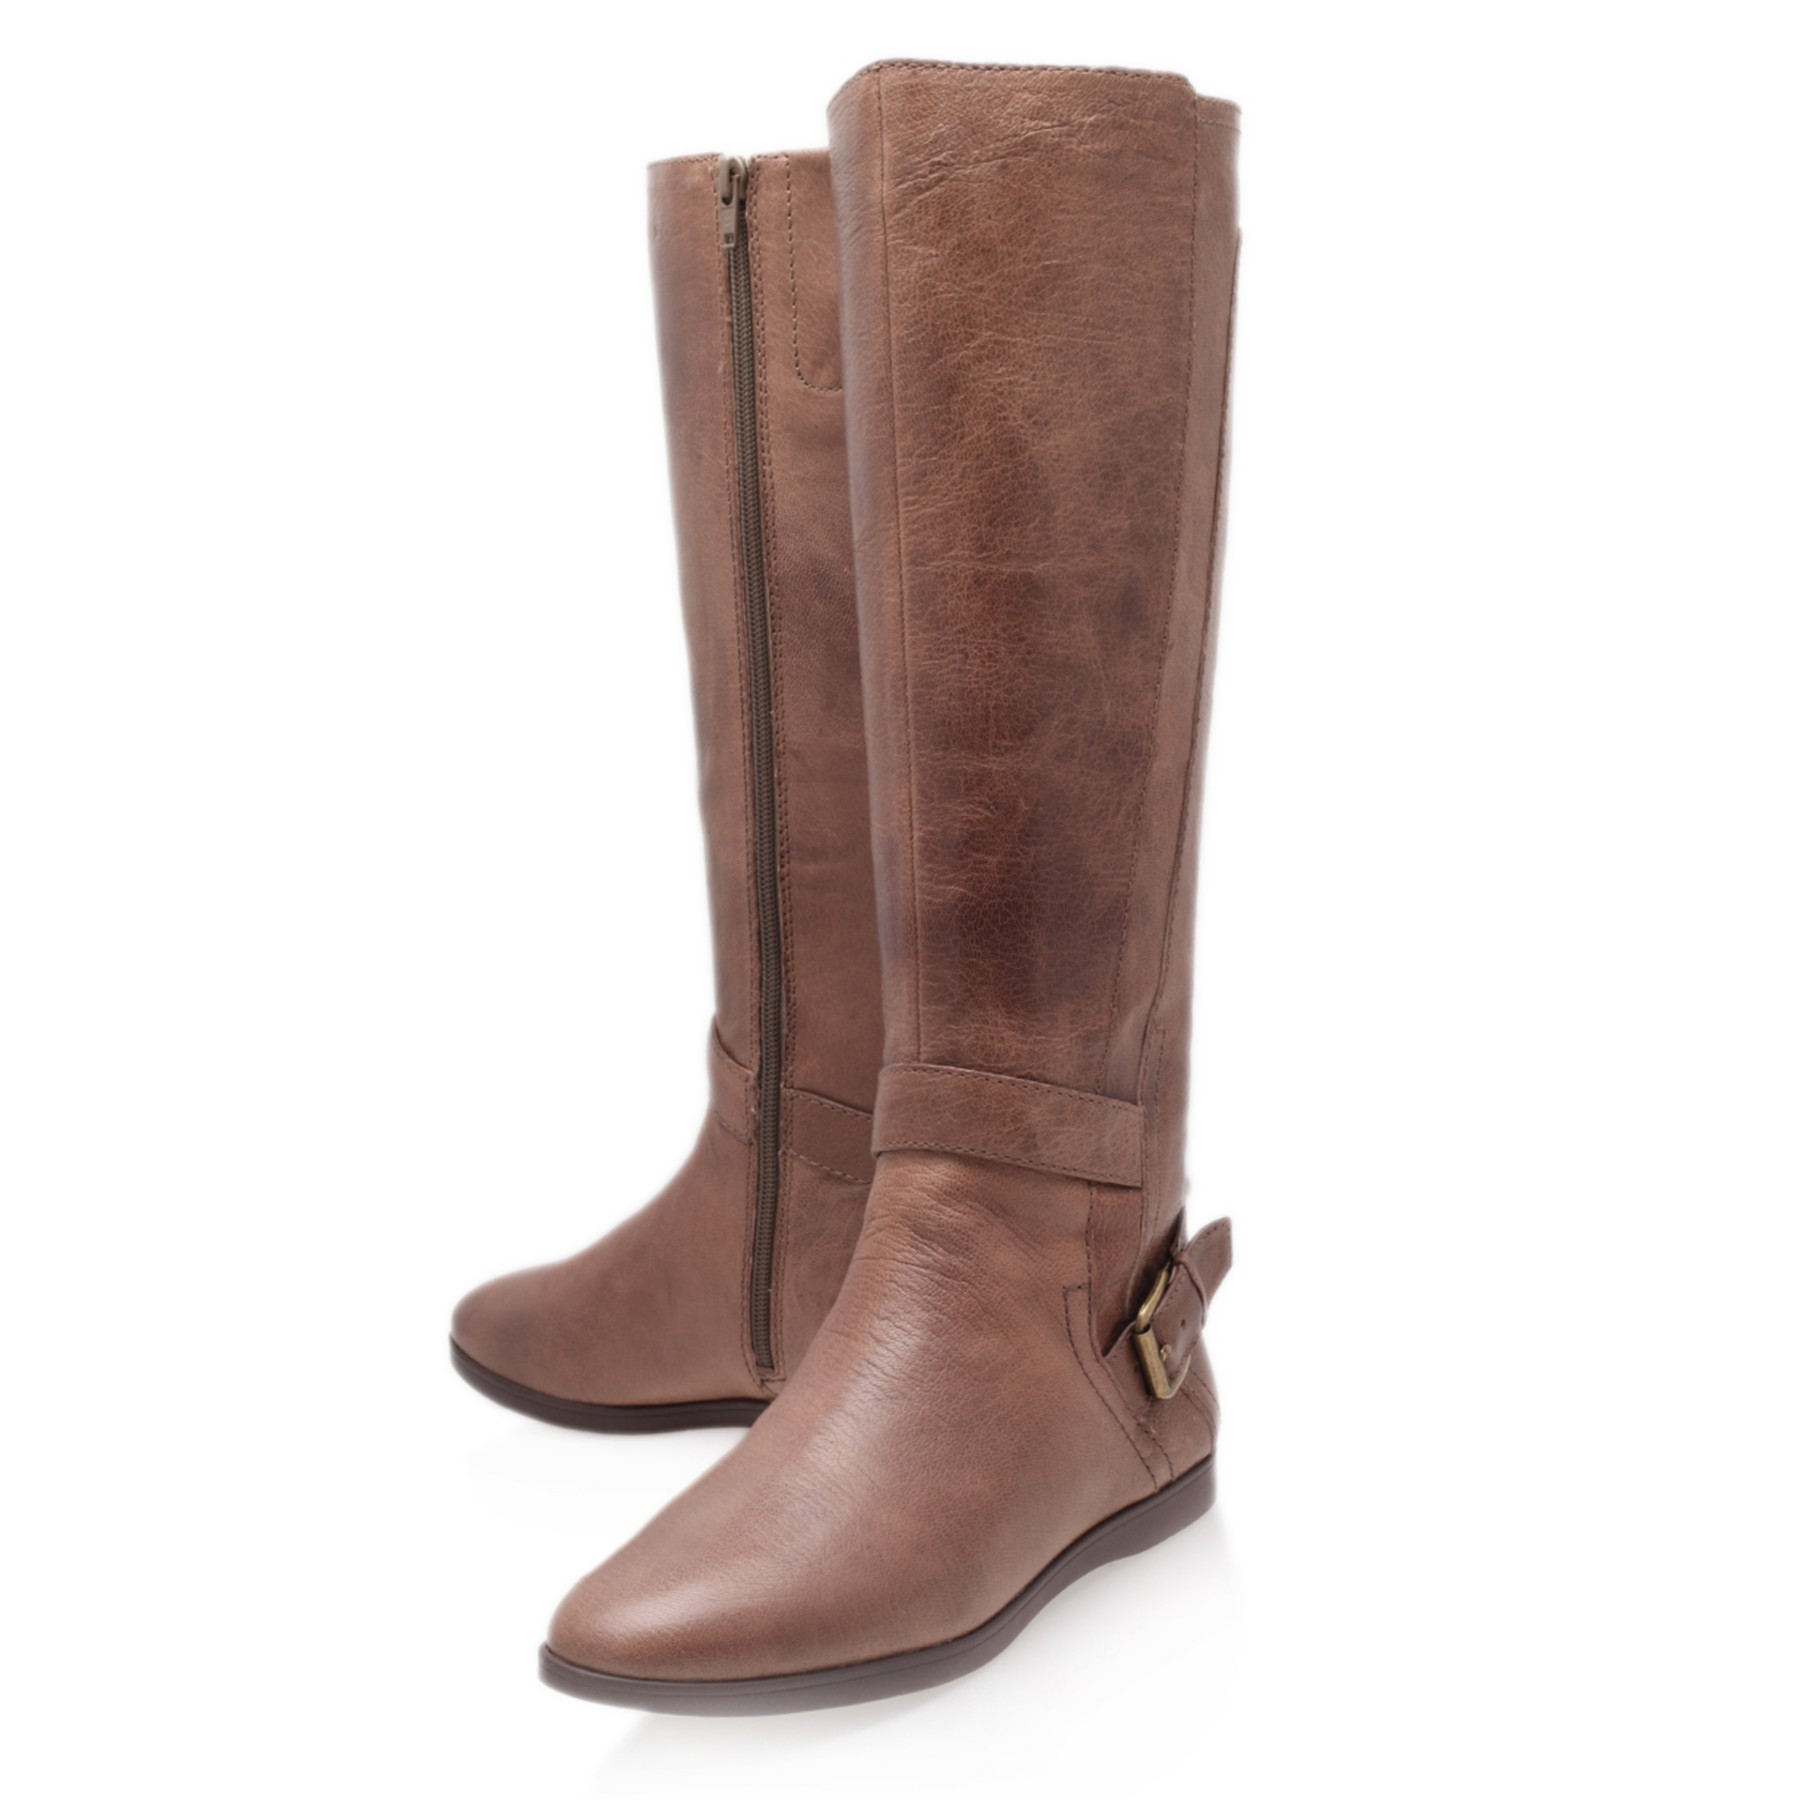 Nine West Toxicatn Knee Boots in Taupe (Brown)